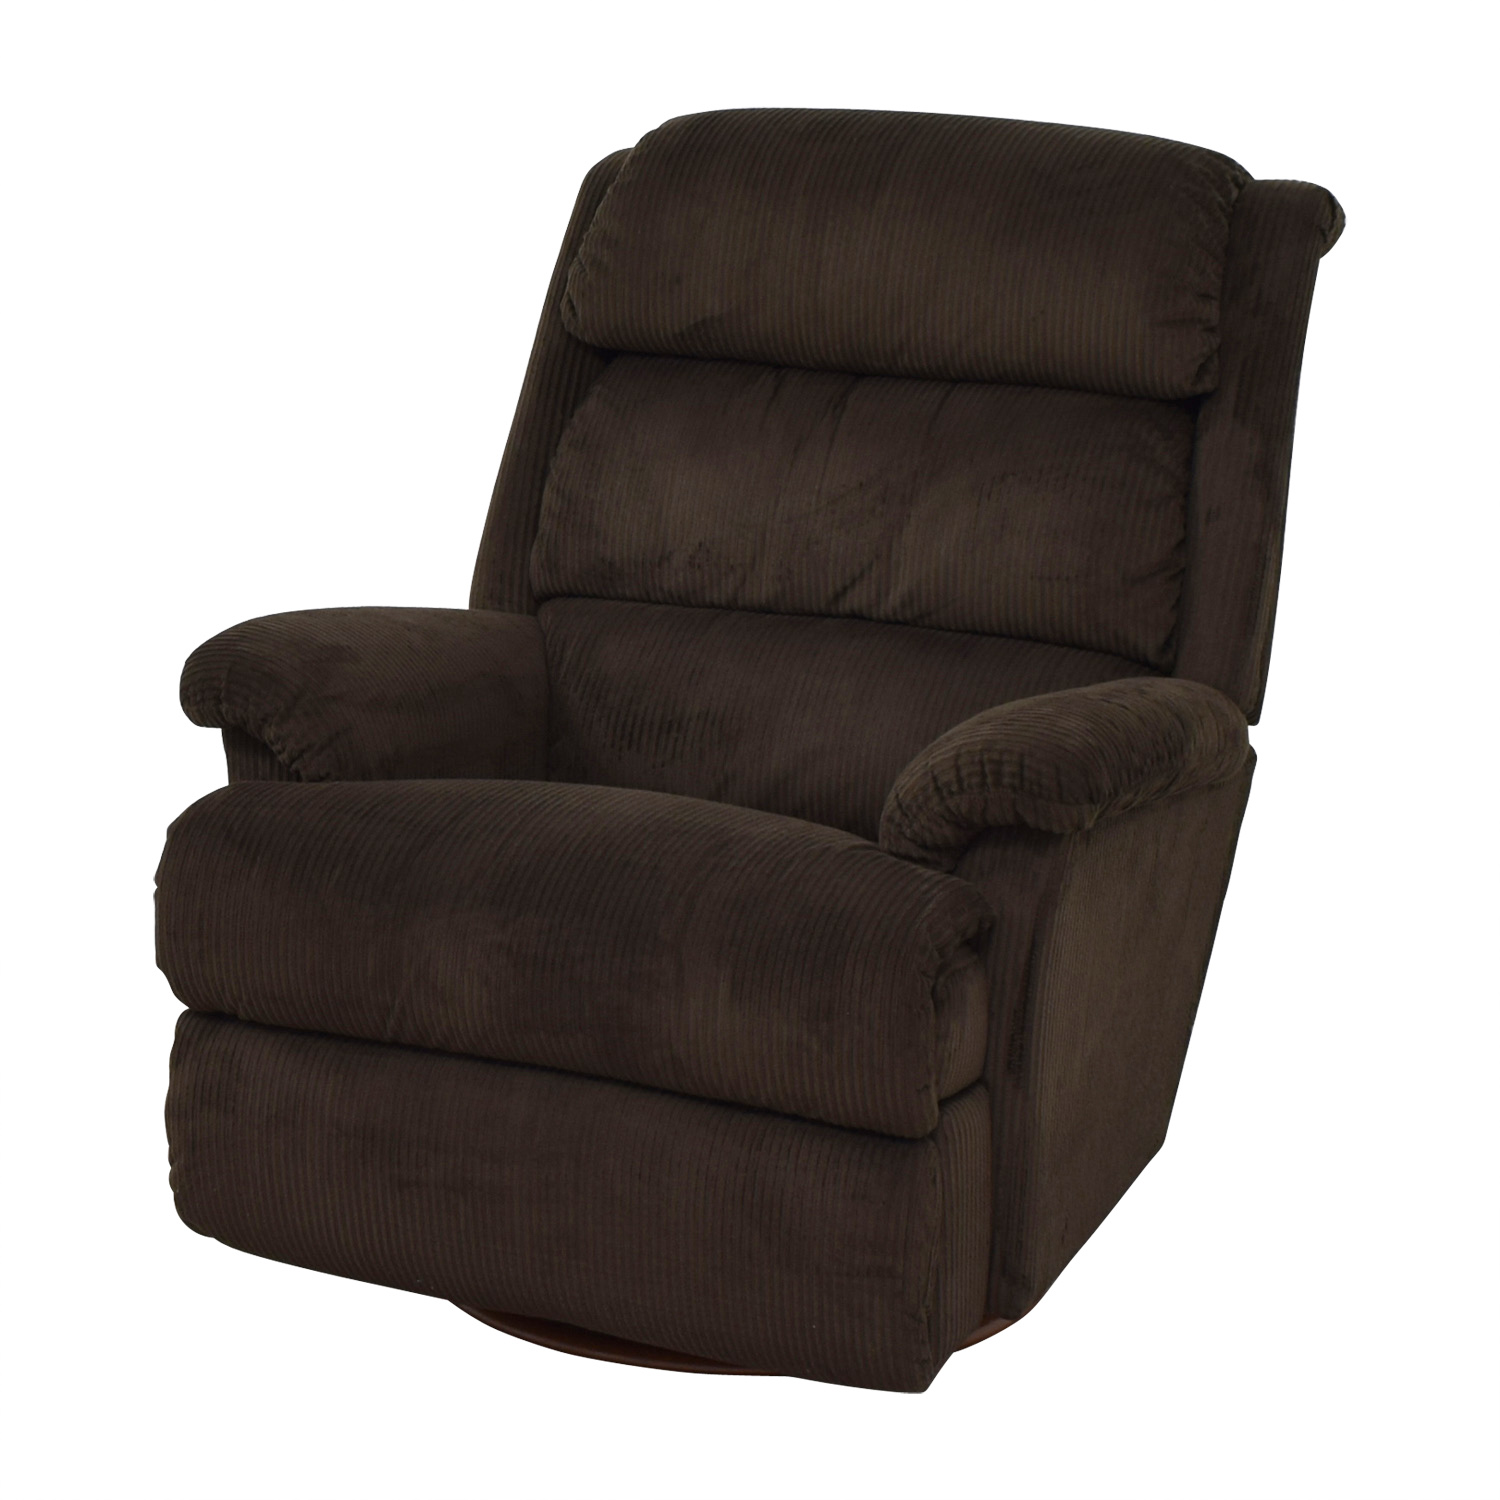 68 Off Lay Z Boy Lay Z Boy Brown Recliner Chairs